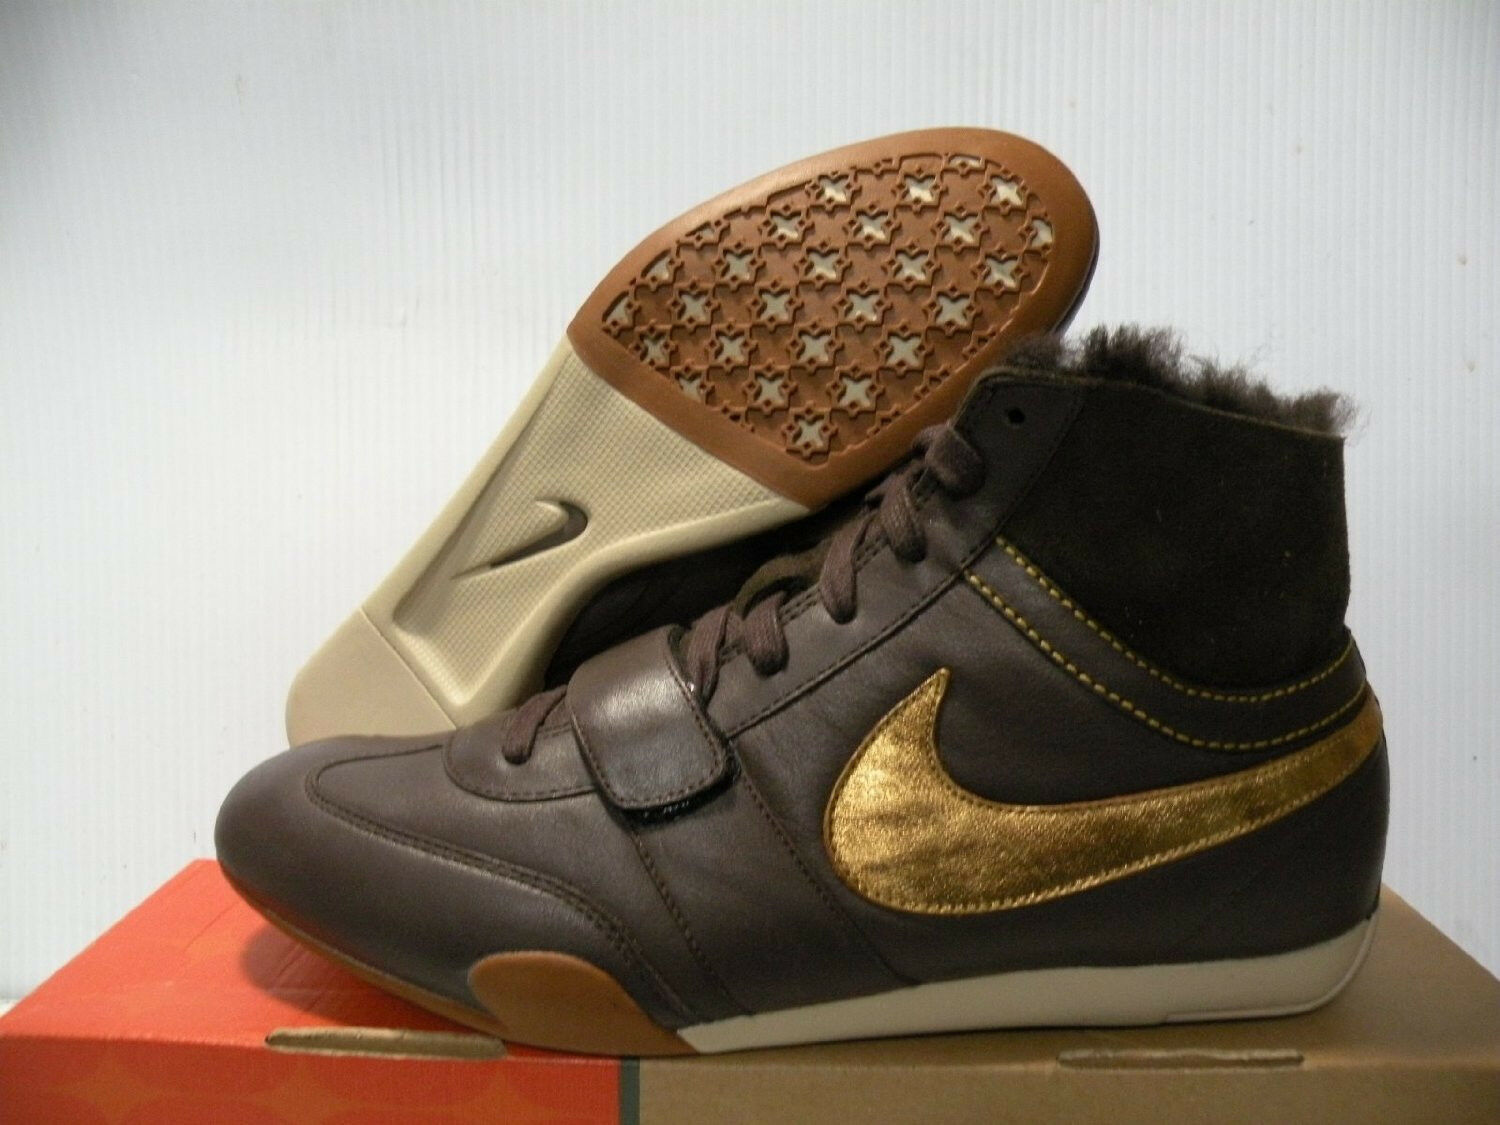 NIKE SPRINT SISTER MID PREMIUM FUR SNEAKERS WOMEN SHOES 314446-271 SIZE 5.5 NEW